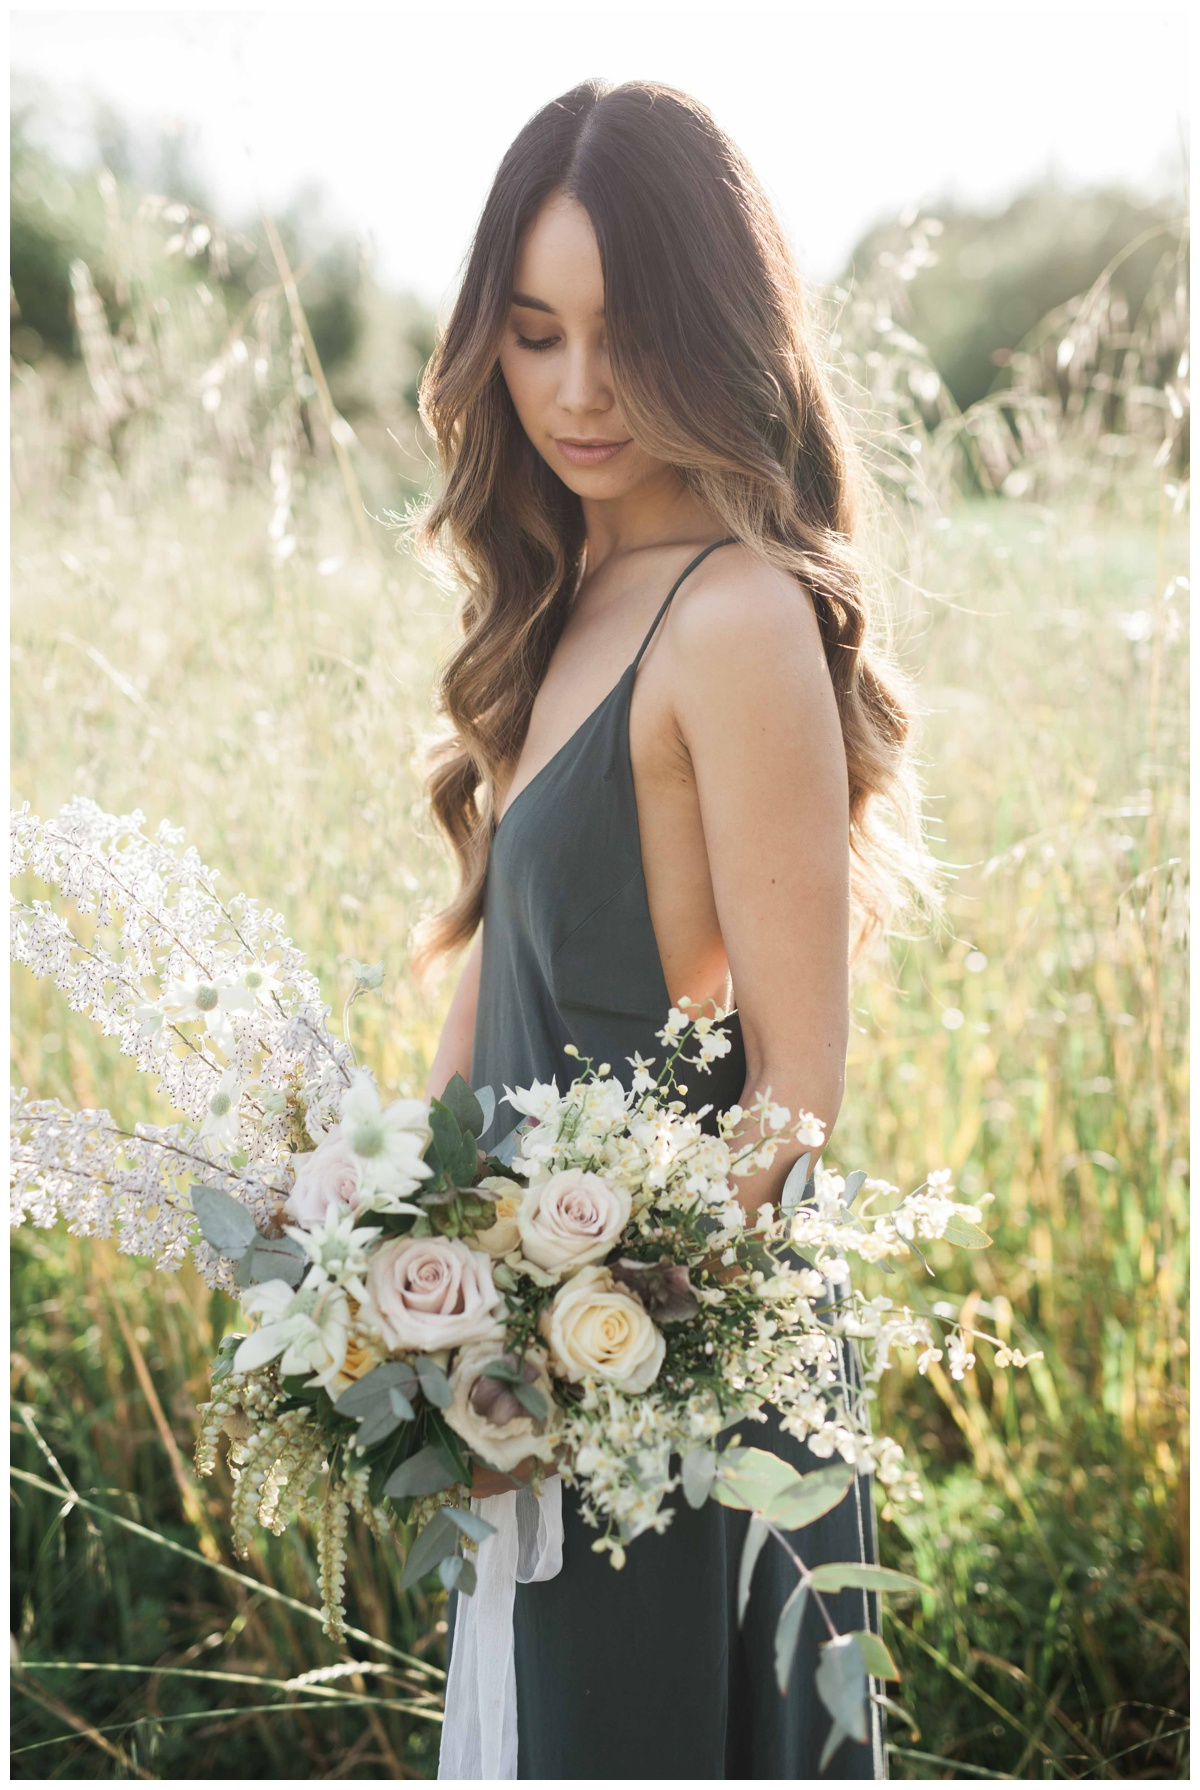 CA Floral Couture & Chrystal Hair - Tessa Kit Photography - Perth Wedding & Engagement Photographer - October 01, 2017 - IMG_7821.jpg